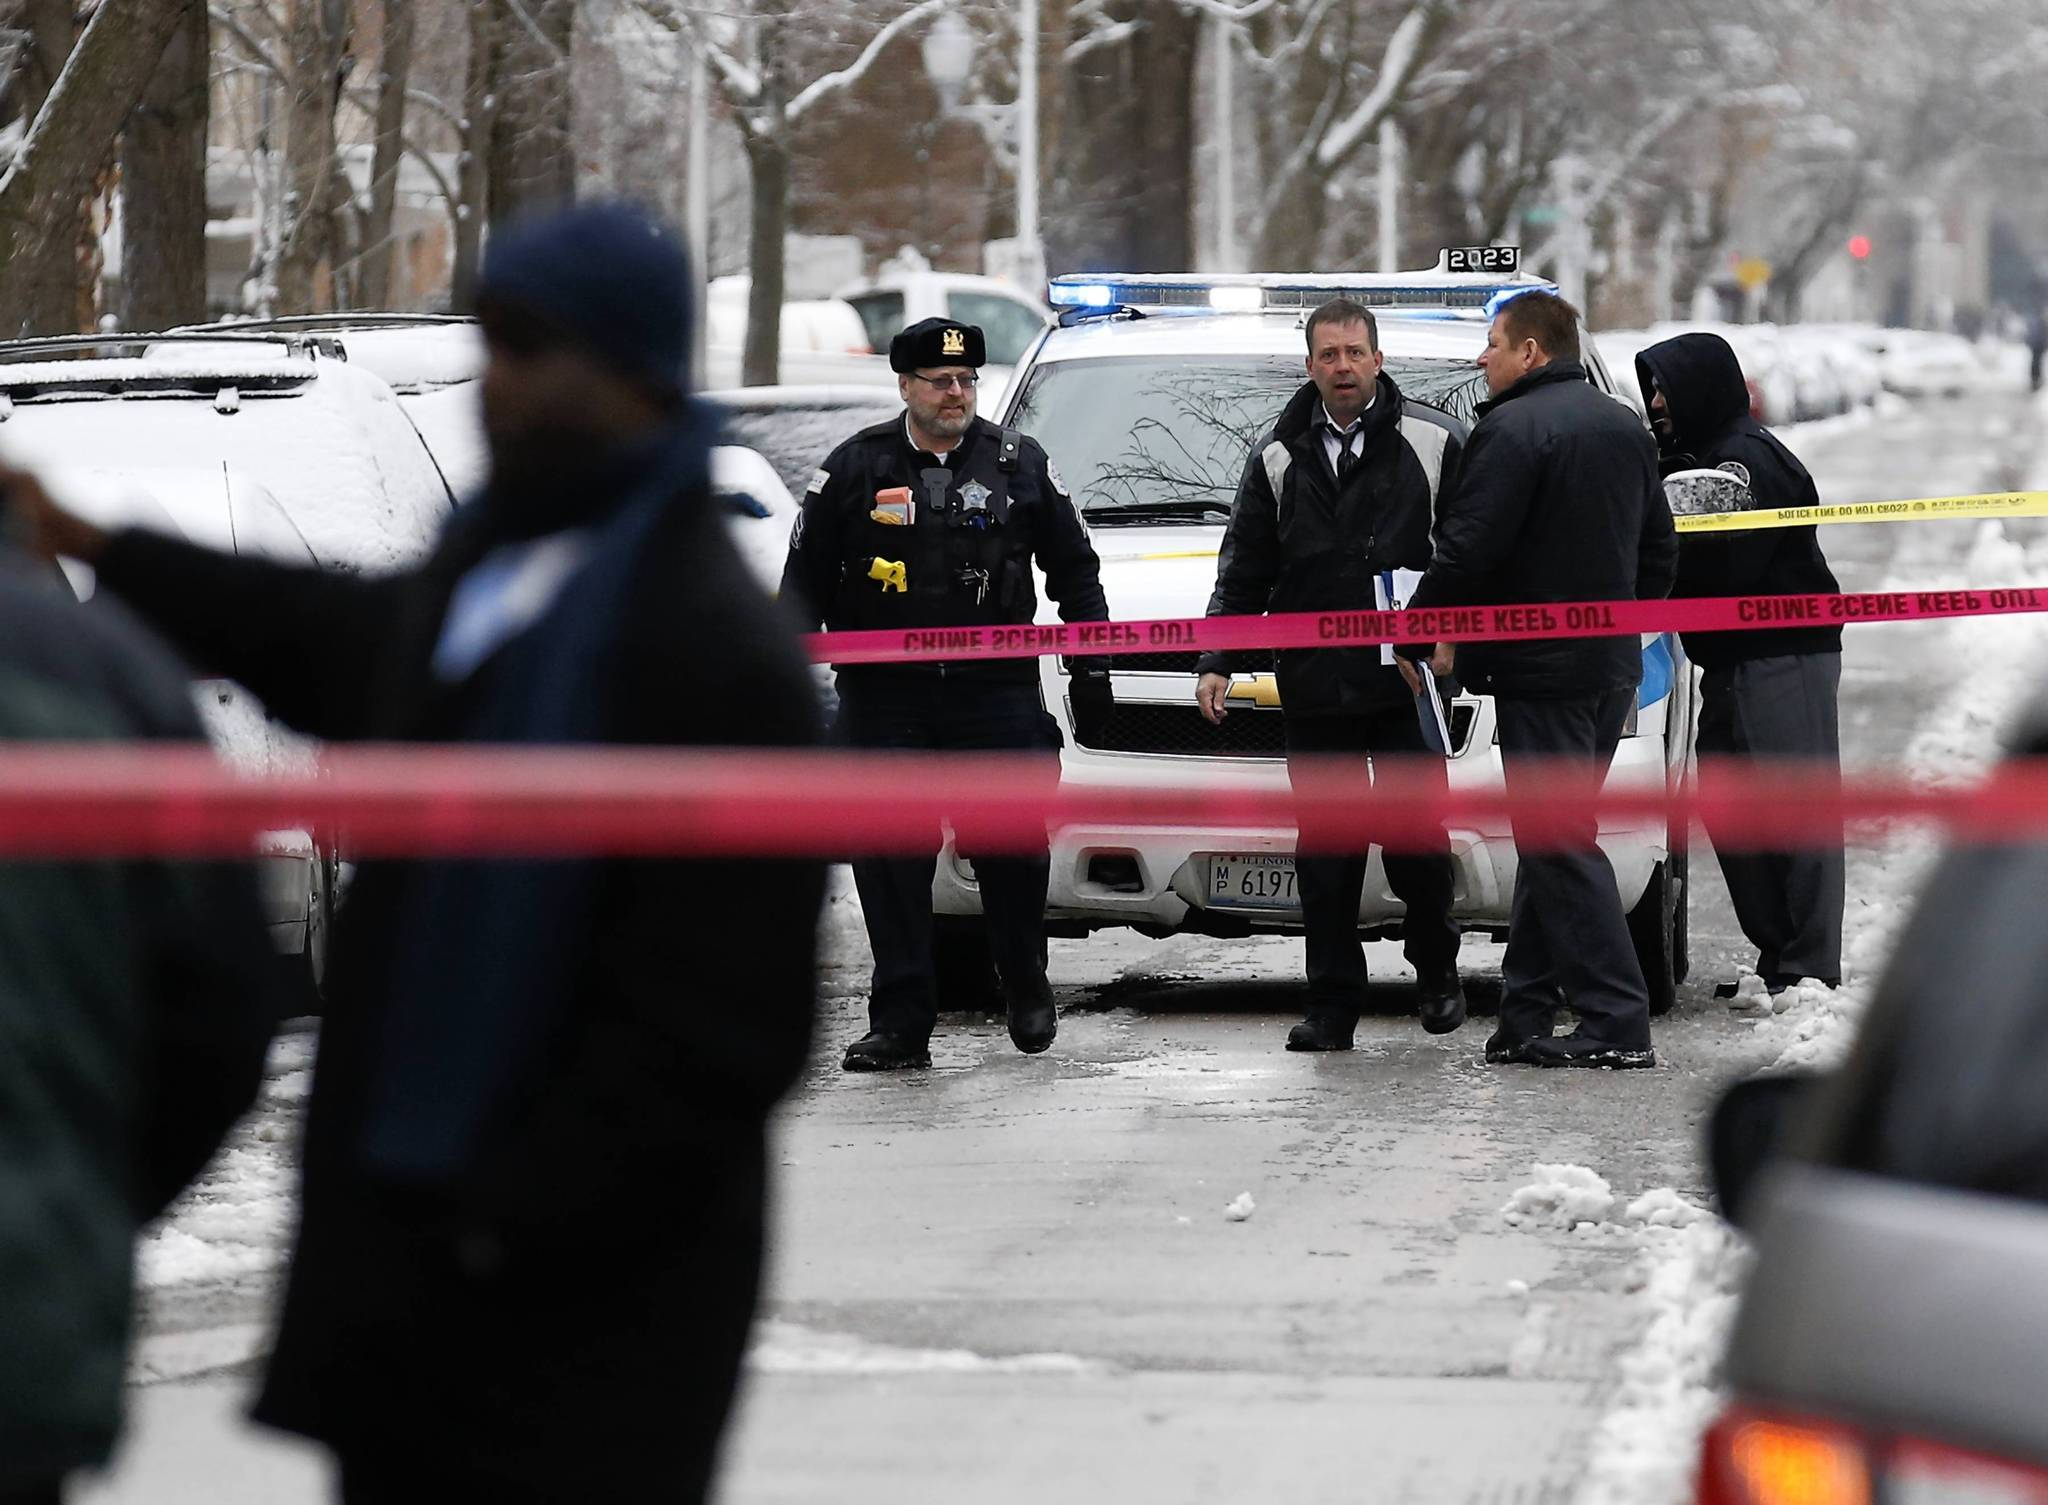 Chicago police investigate near the scene where a 23-year-old man was shot this morning on the 5800 block of North Kenmore Avenue in the Edgewater Beach neighborhood in Chicago.